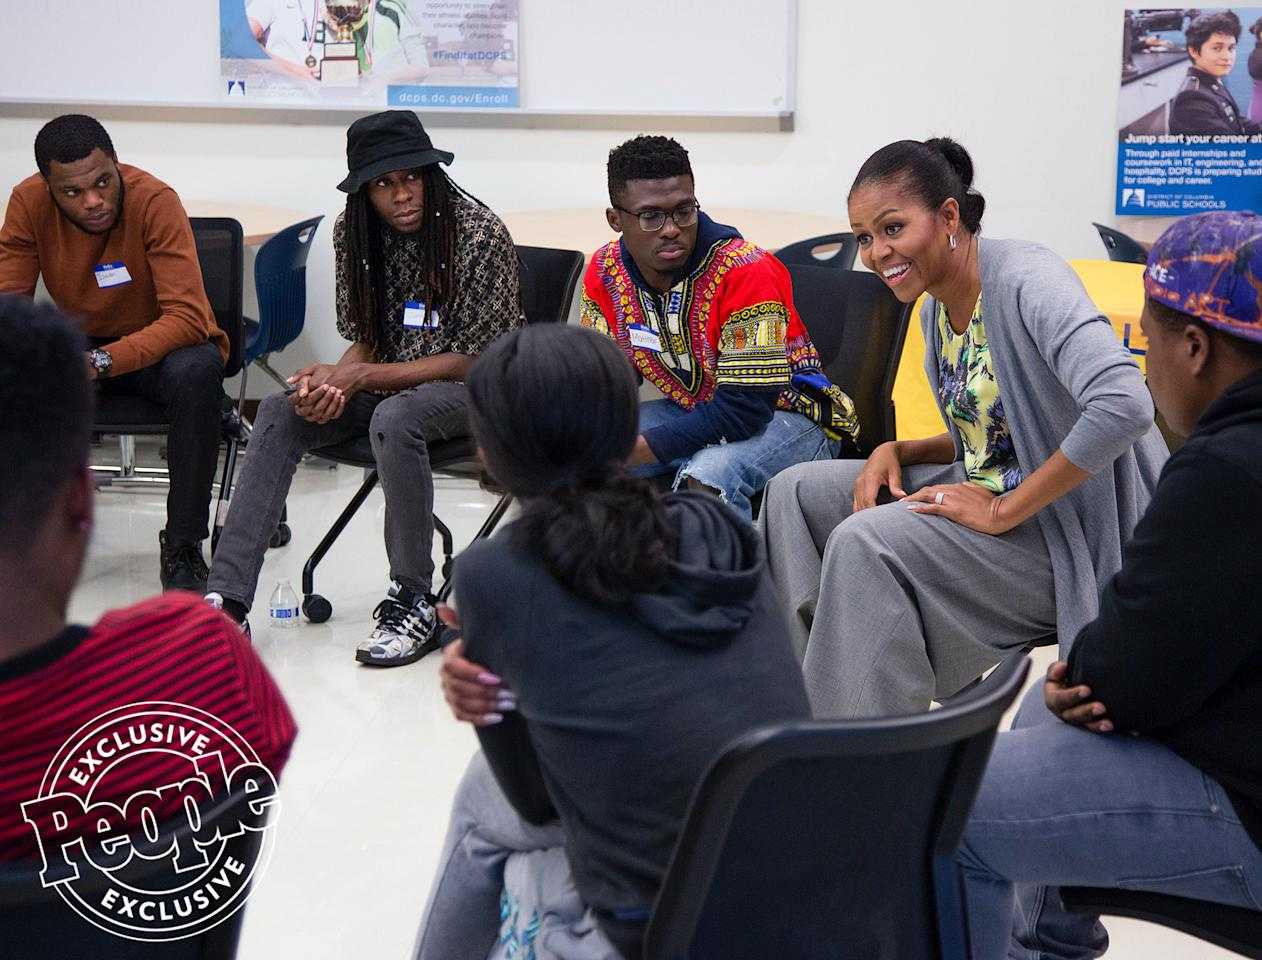 <p>At Ballou STAY (School to Aid Youth) in Washington, D.C., Michelle spent two and a half hours talking with adult students working to finish their high school degrees.</p>